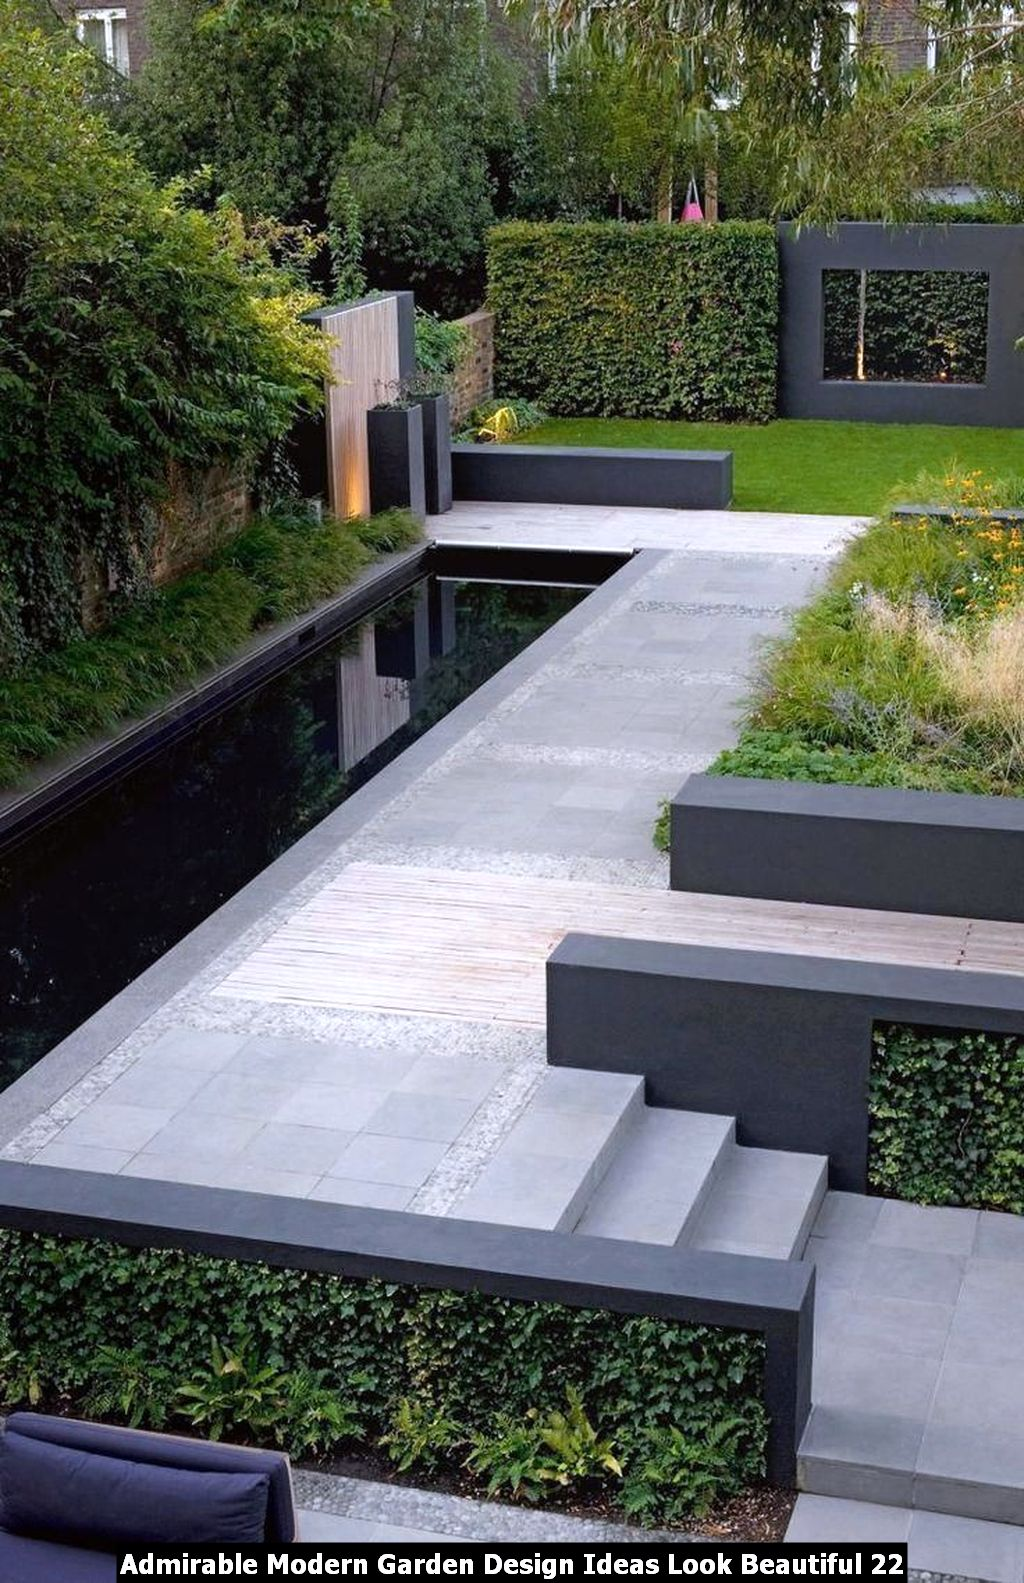 Admirable Modern Garden Design Ideas Look Beautiful 22